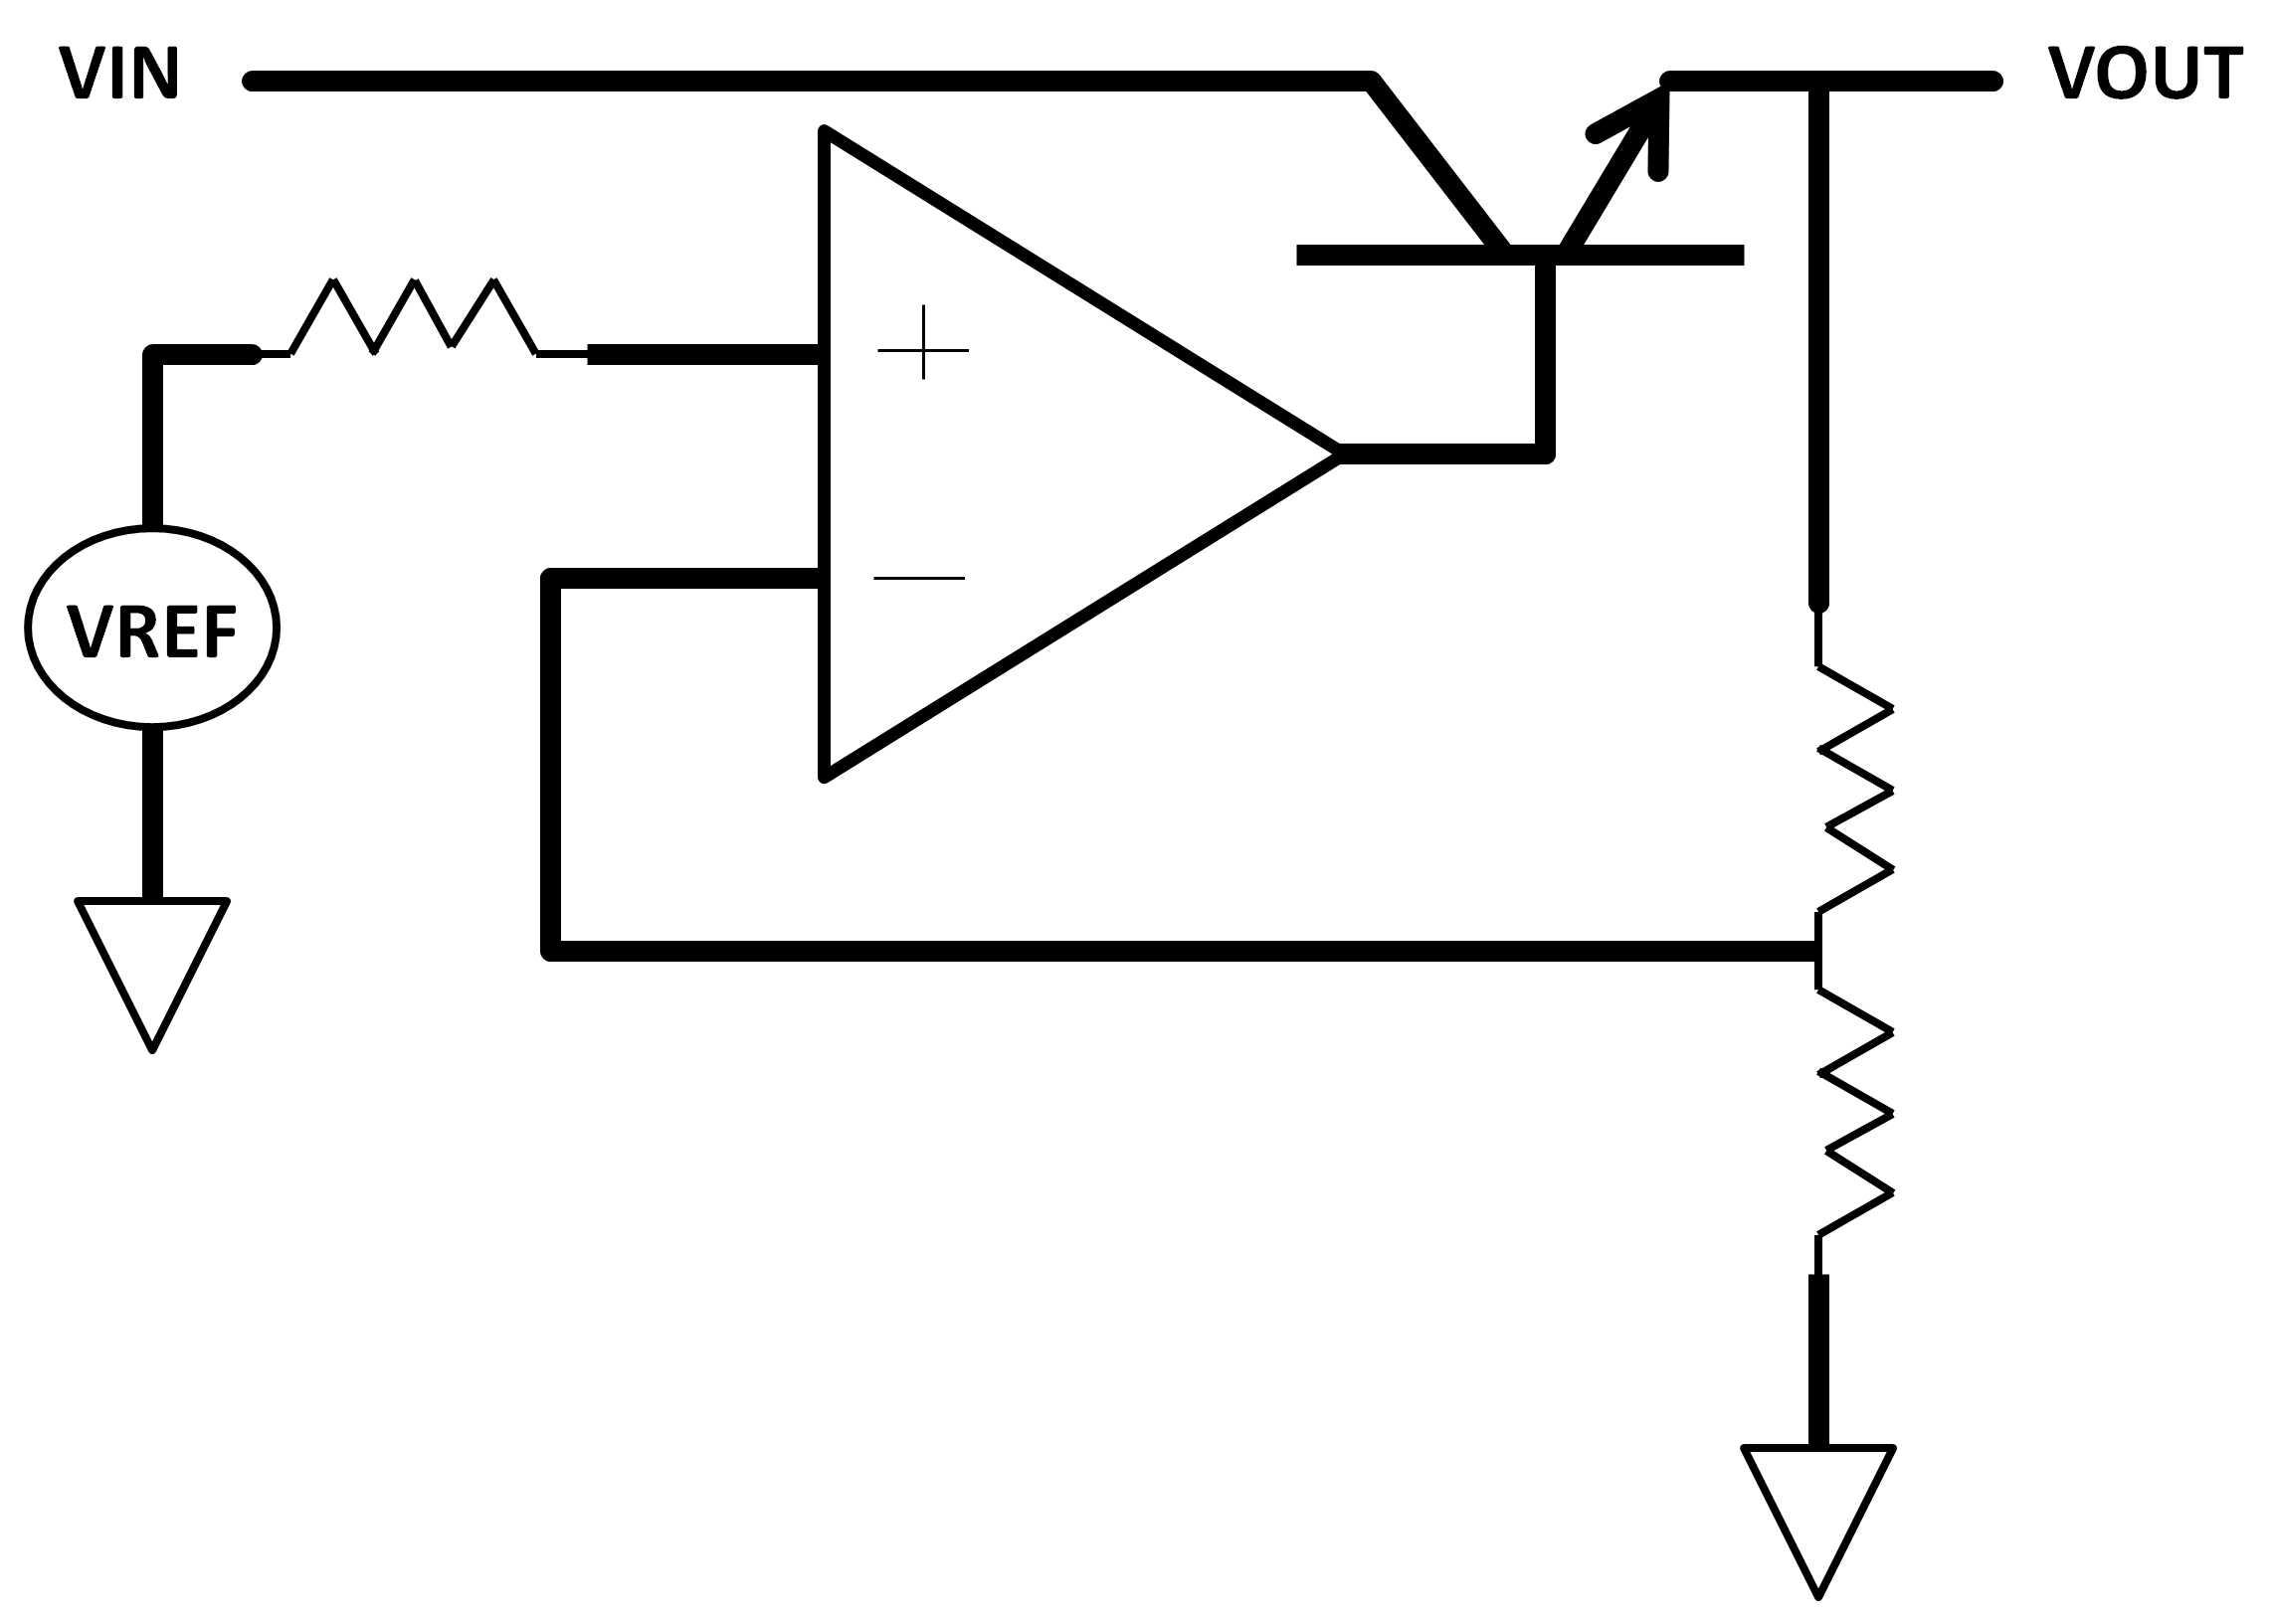 Series Regulator Developer Help Linear Integrated Circuit Questions And Answers Voltage Limiter Opamp